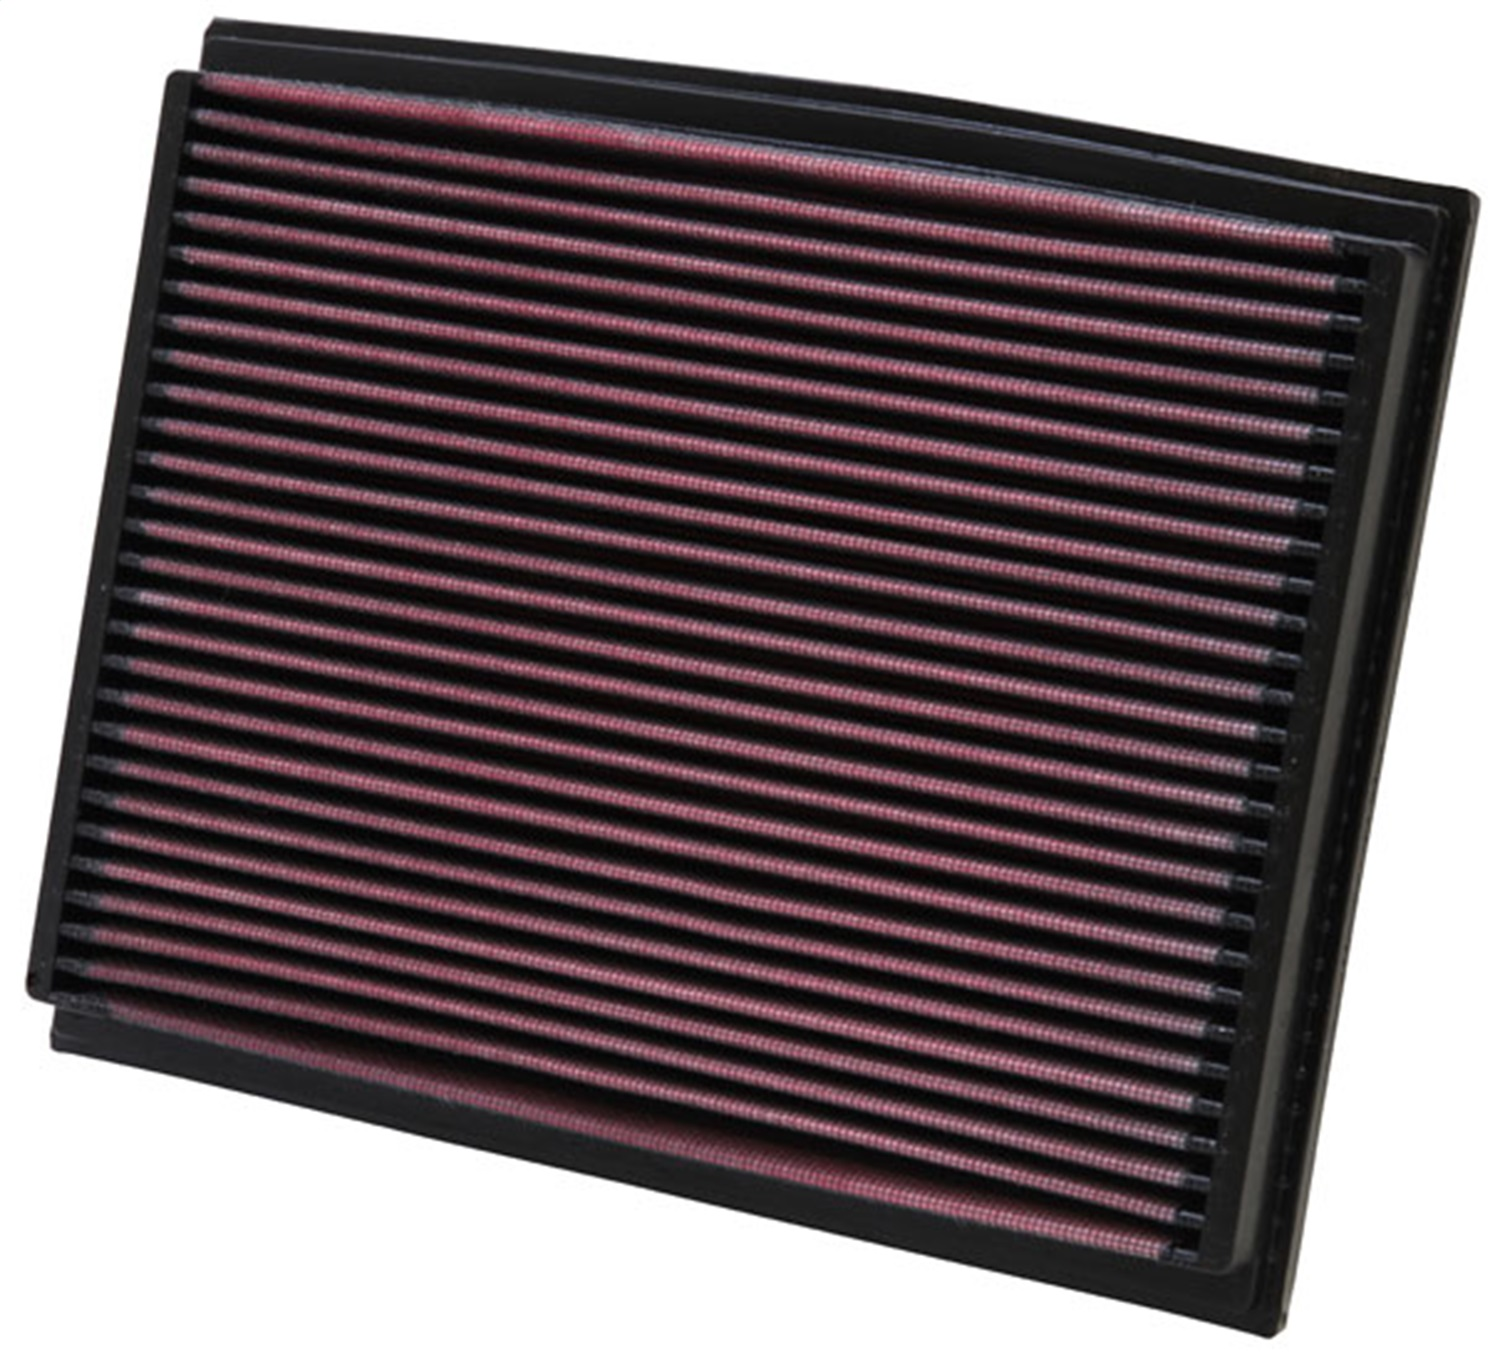 K&N Filters 33-2209 Air Filter Fits 02-10 A4 A4 Quattro RS4 S4 33-2209